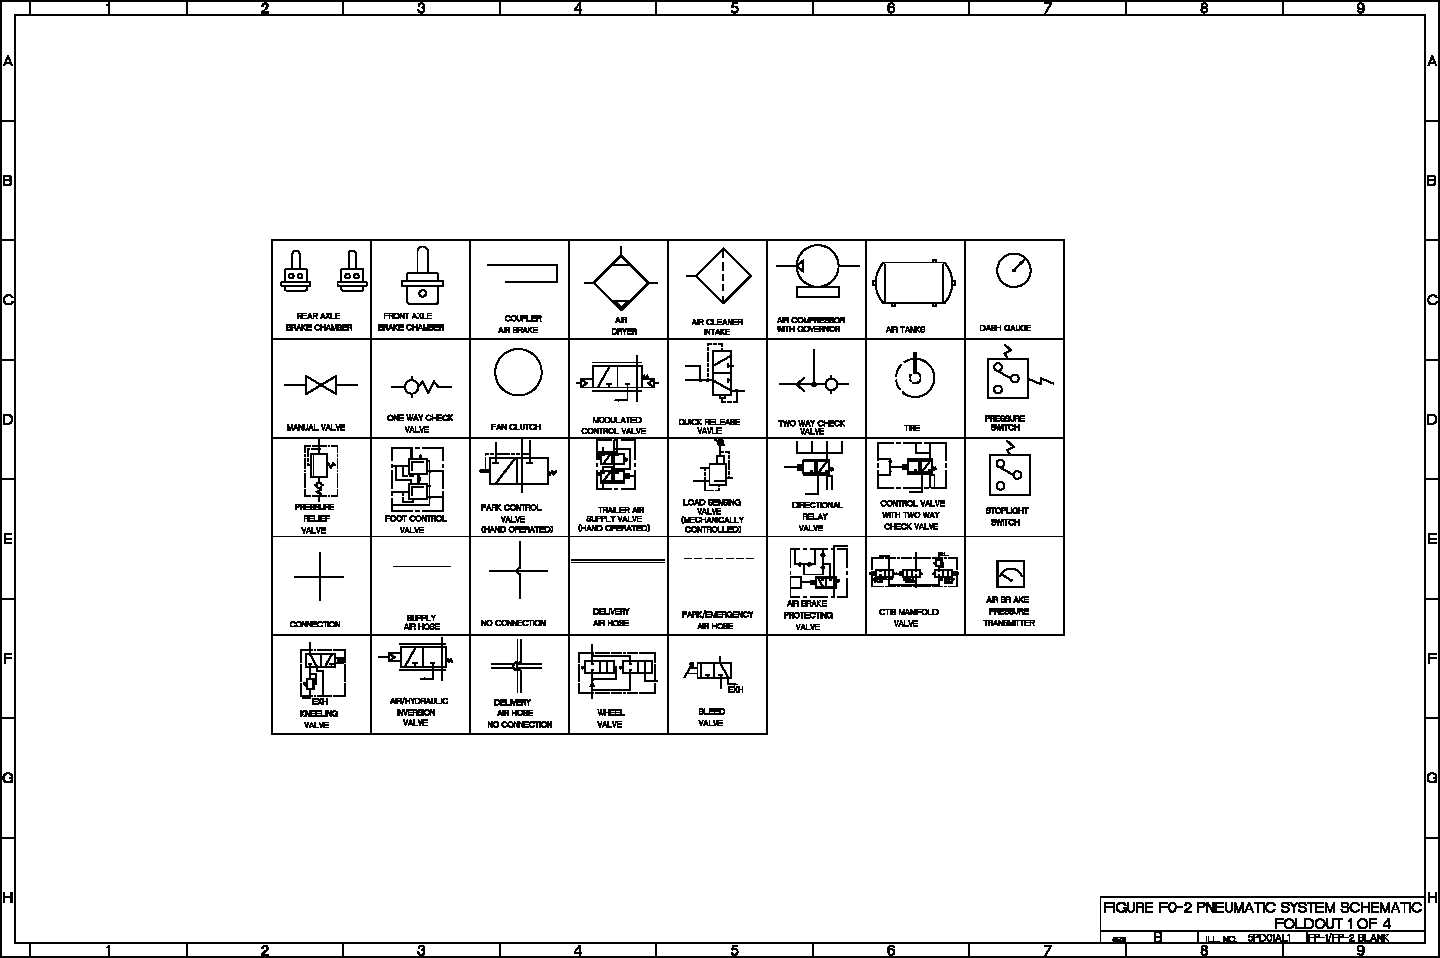 Wiring Diagram For Humvee Toyota Tundra Diagram Wiring